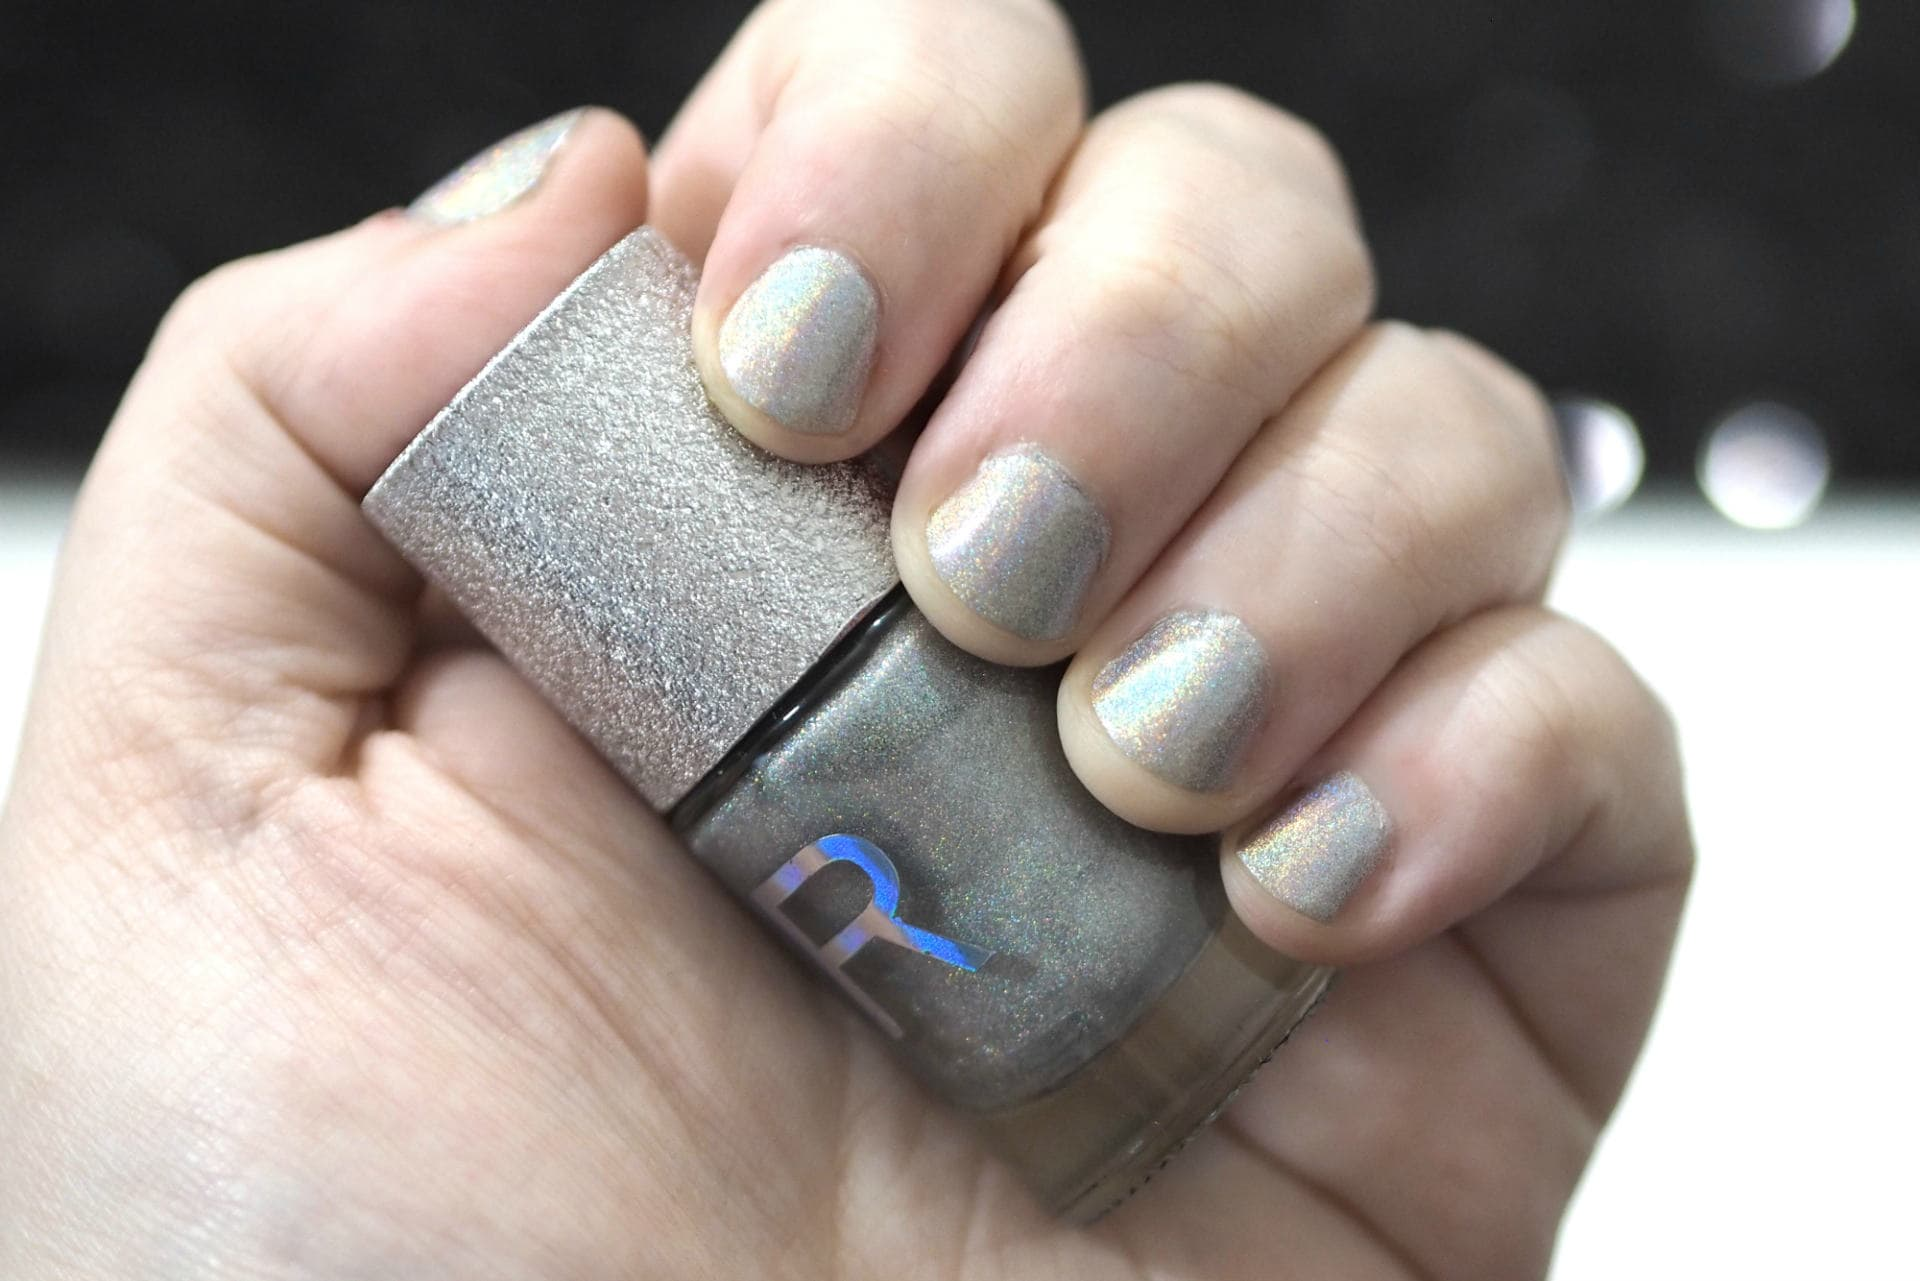 Revolution Holographic Nail Polish - Aura Review and Swatches